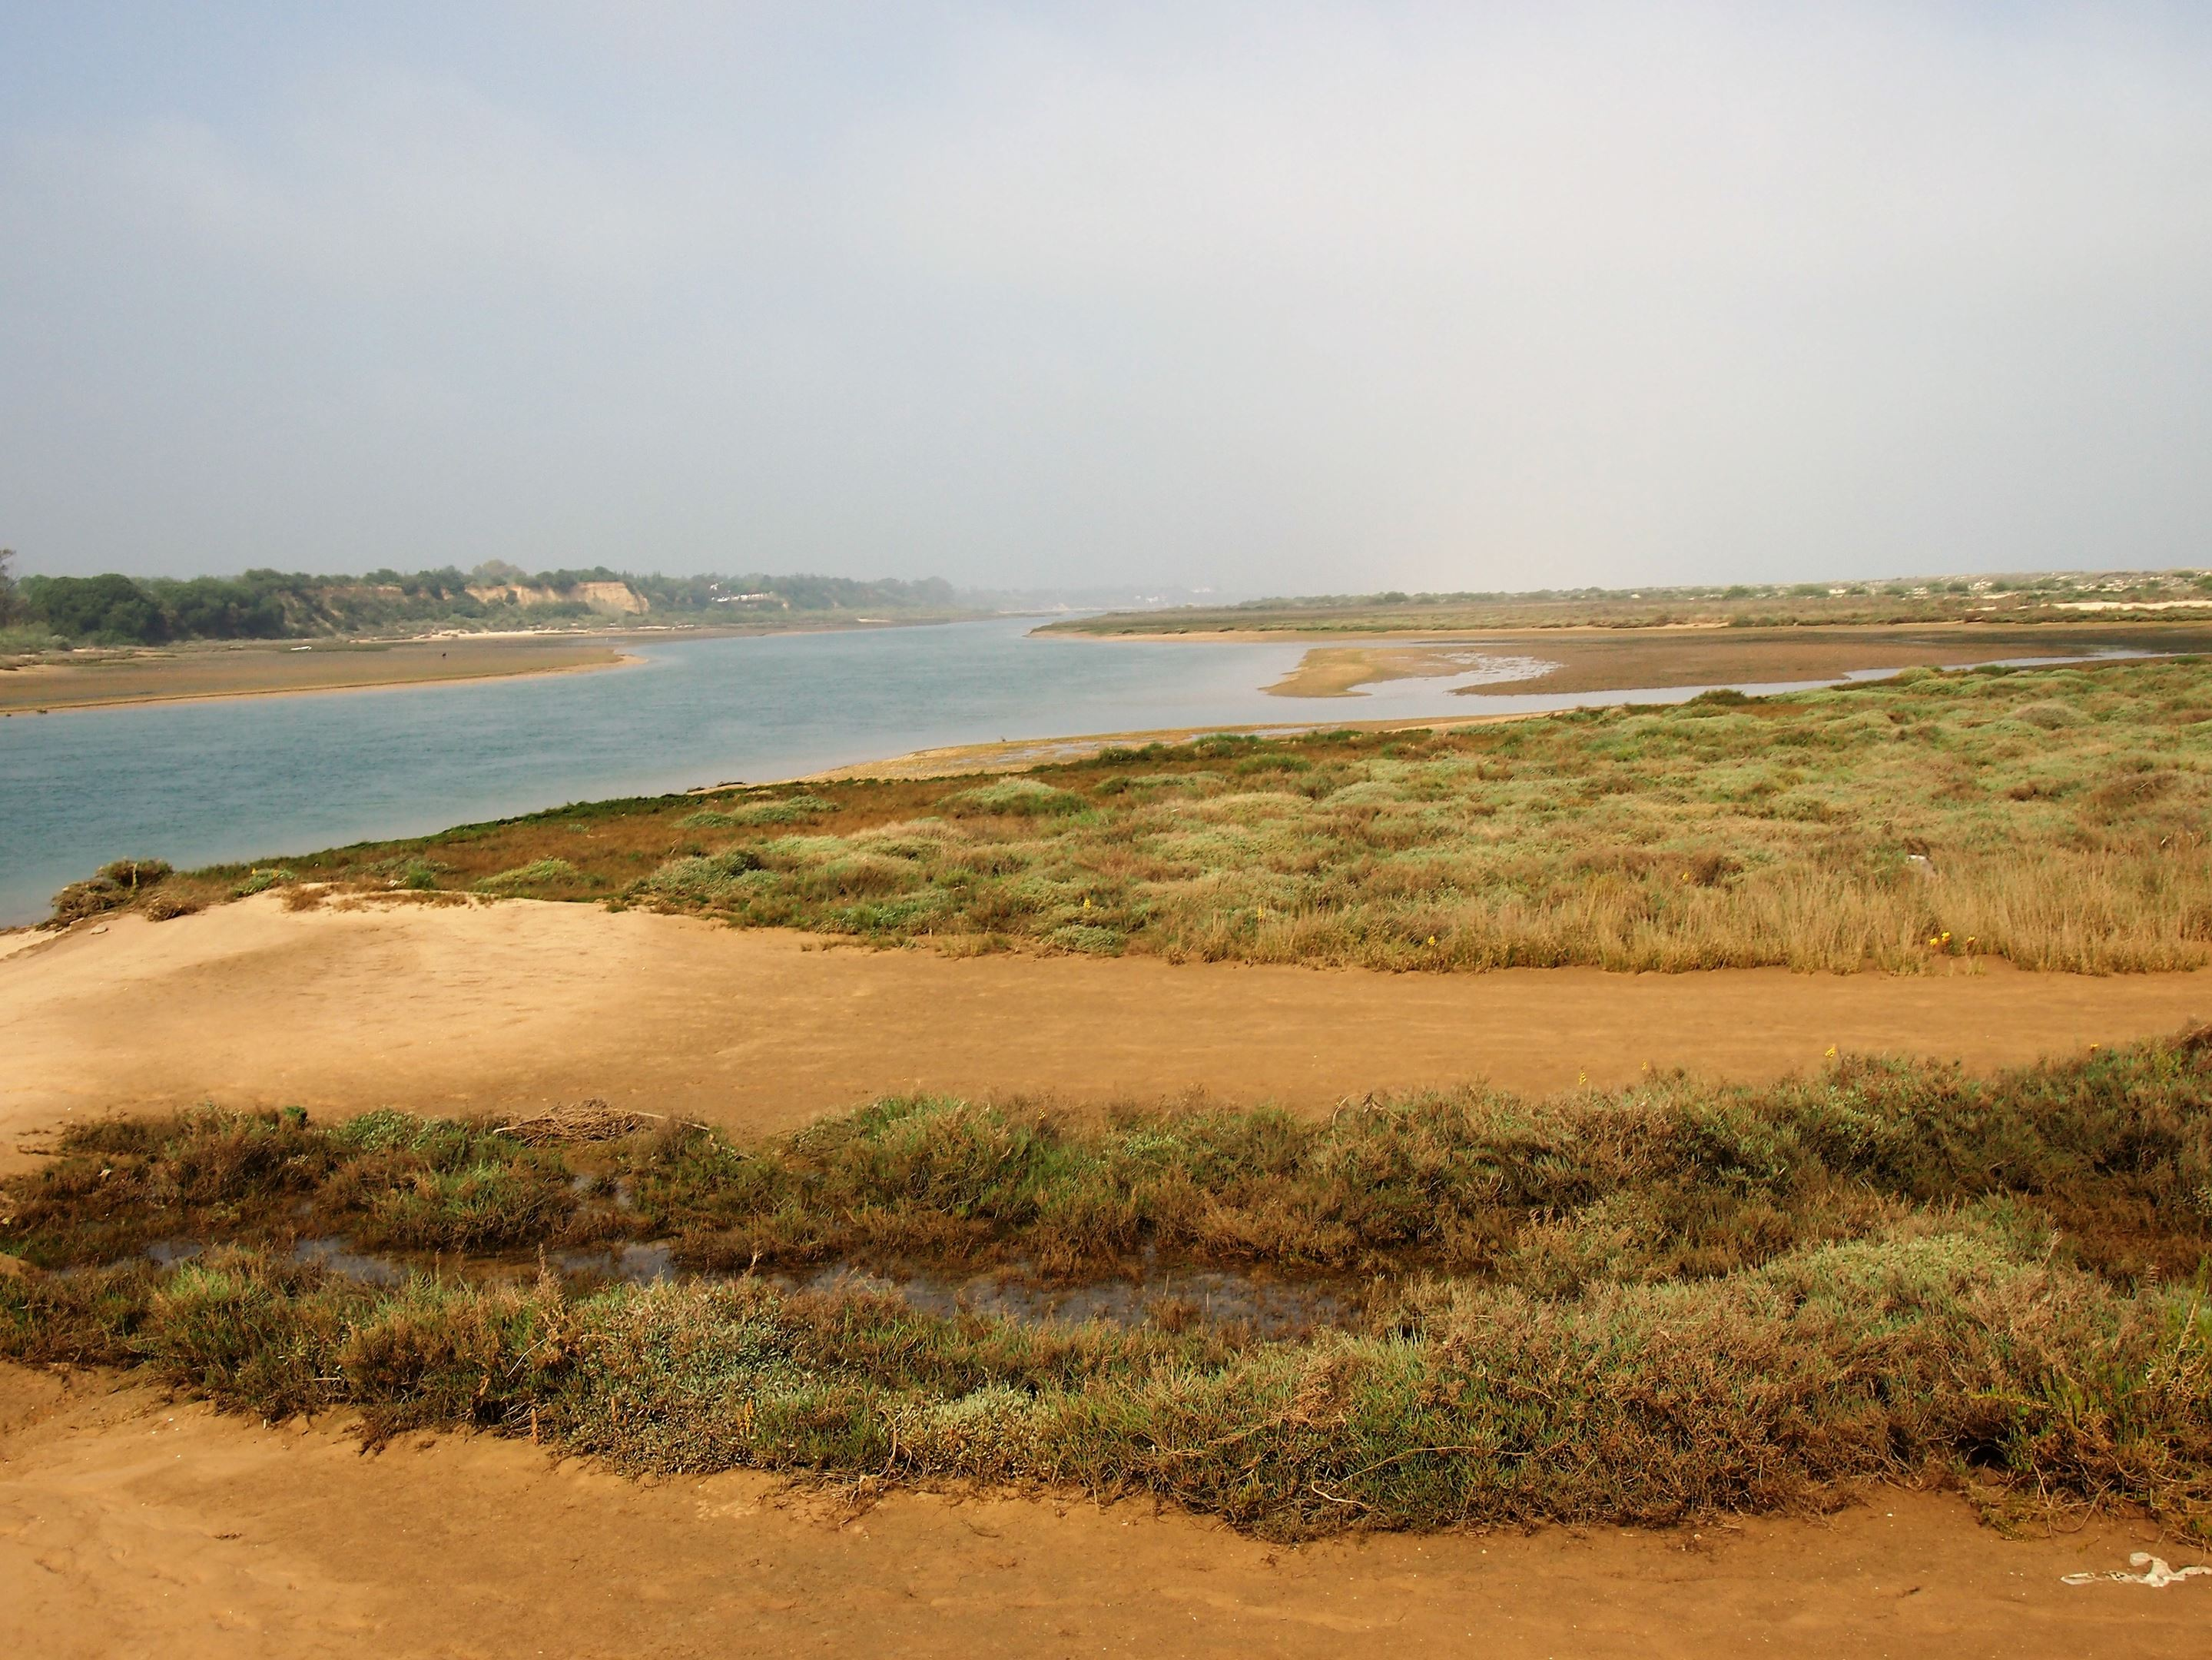 Ilha de Cabanas on the right, and the mainland on the left, separated by a small channel of water near Tavira